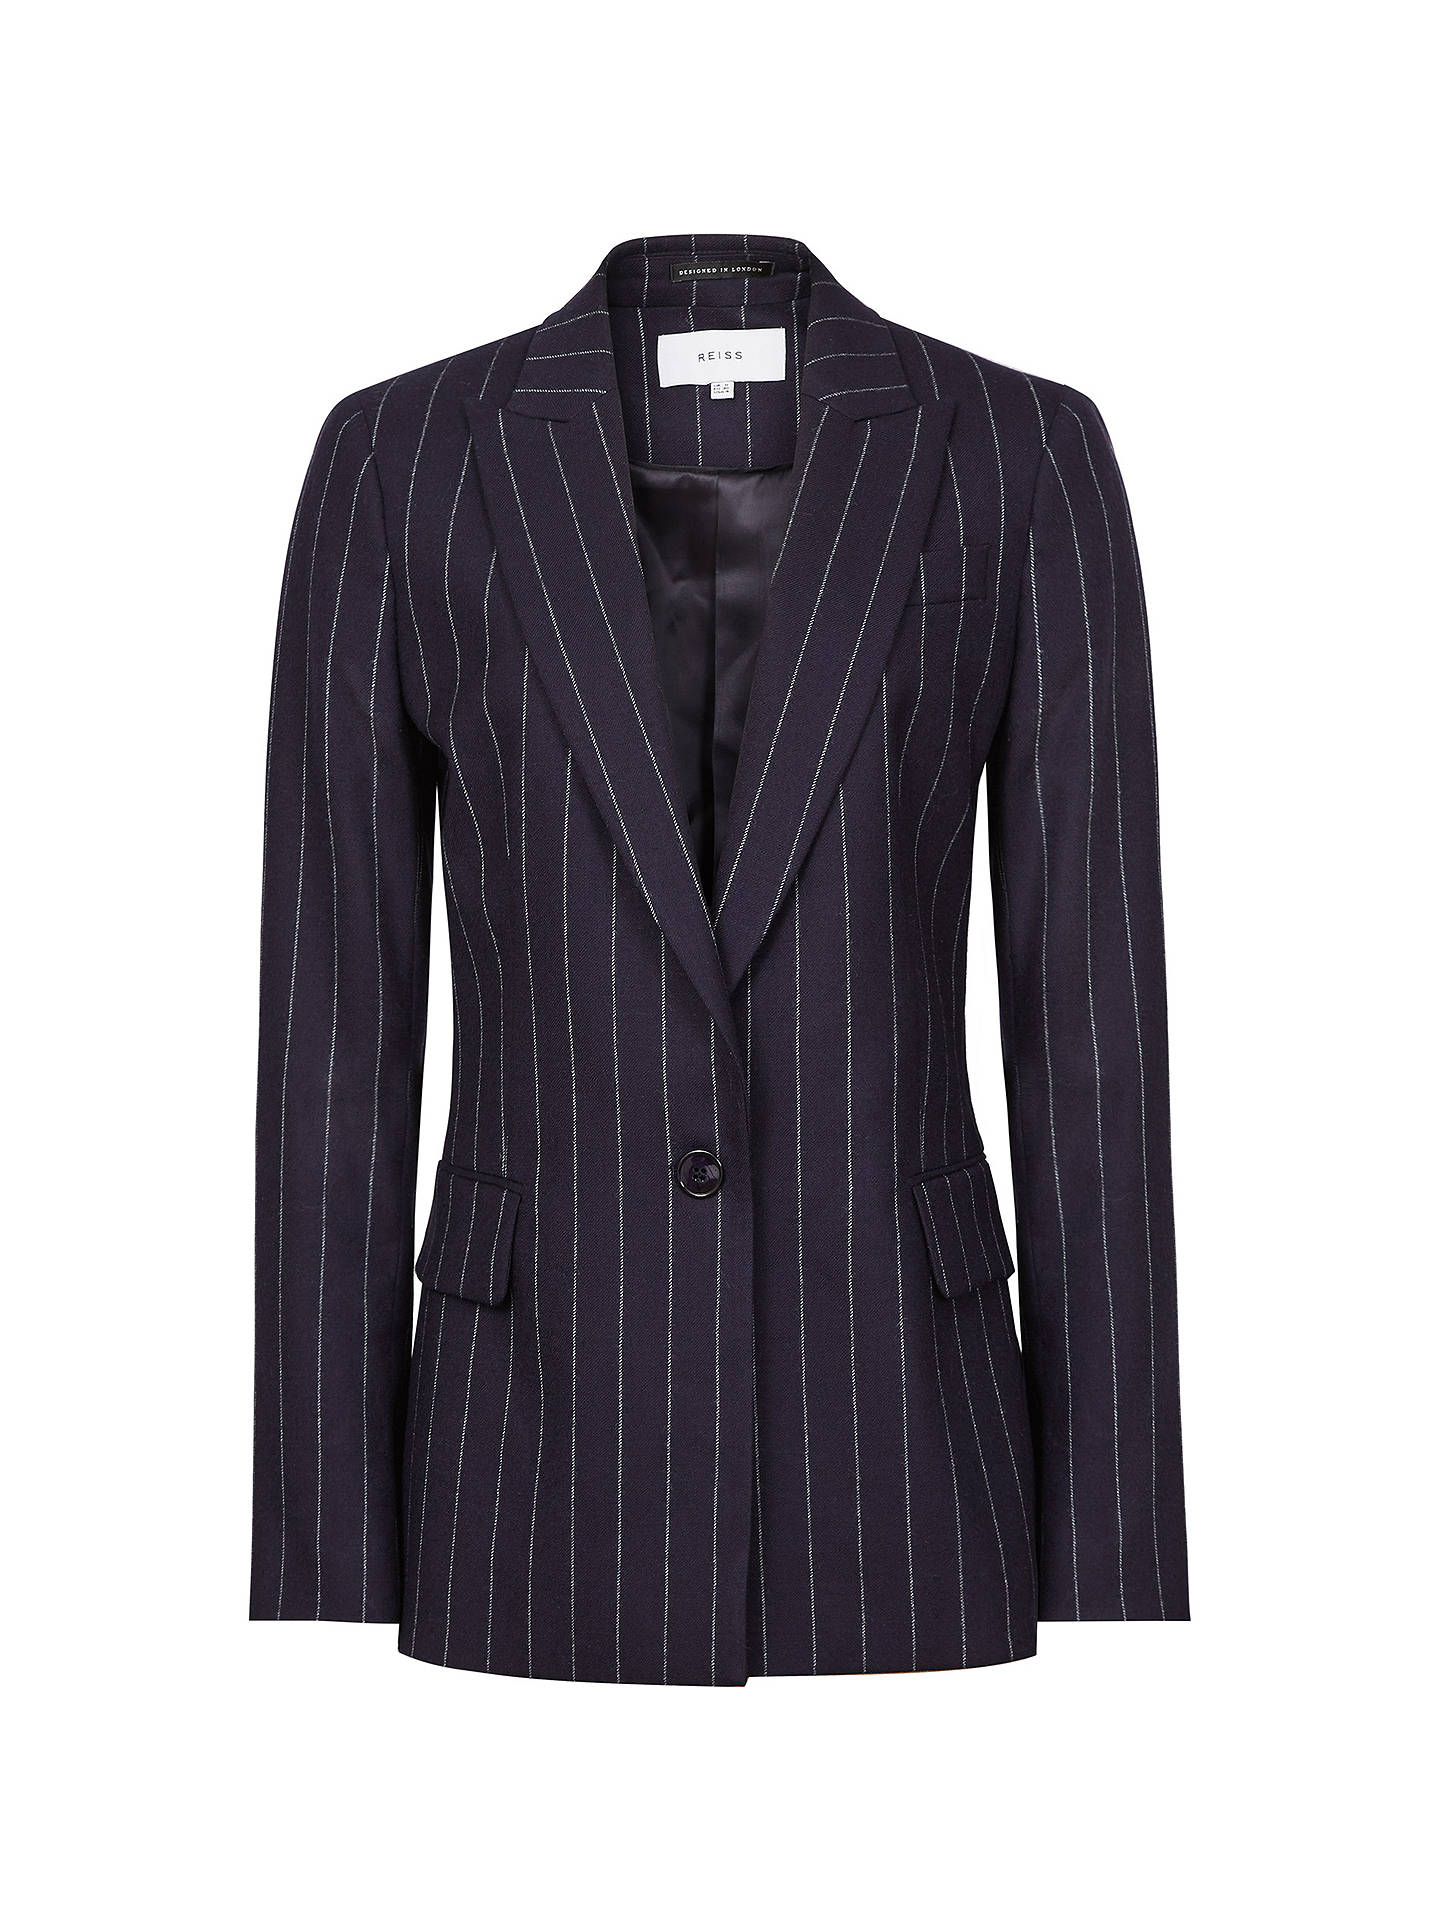 BuyReiss Piper Tailored Pinstriped Jacket, Navy, 6 Online at johnlewis.com